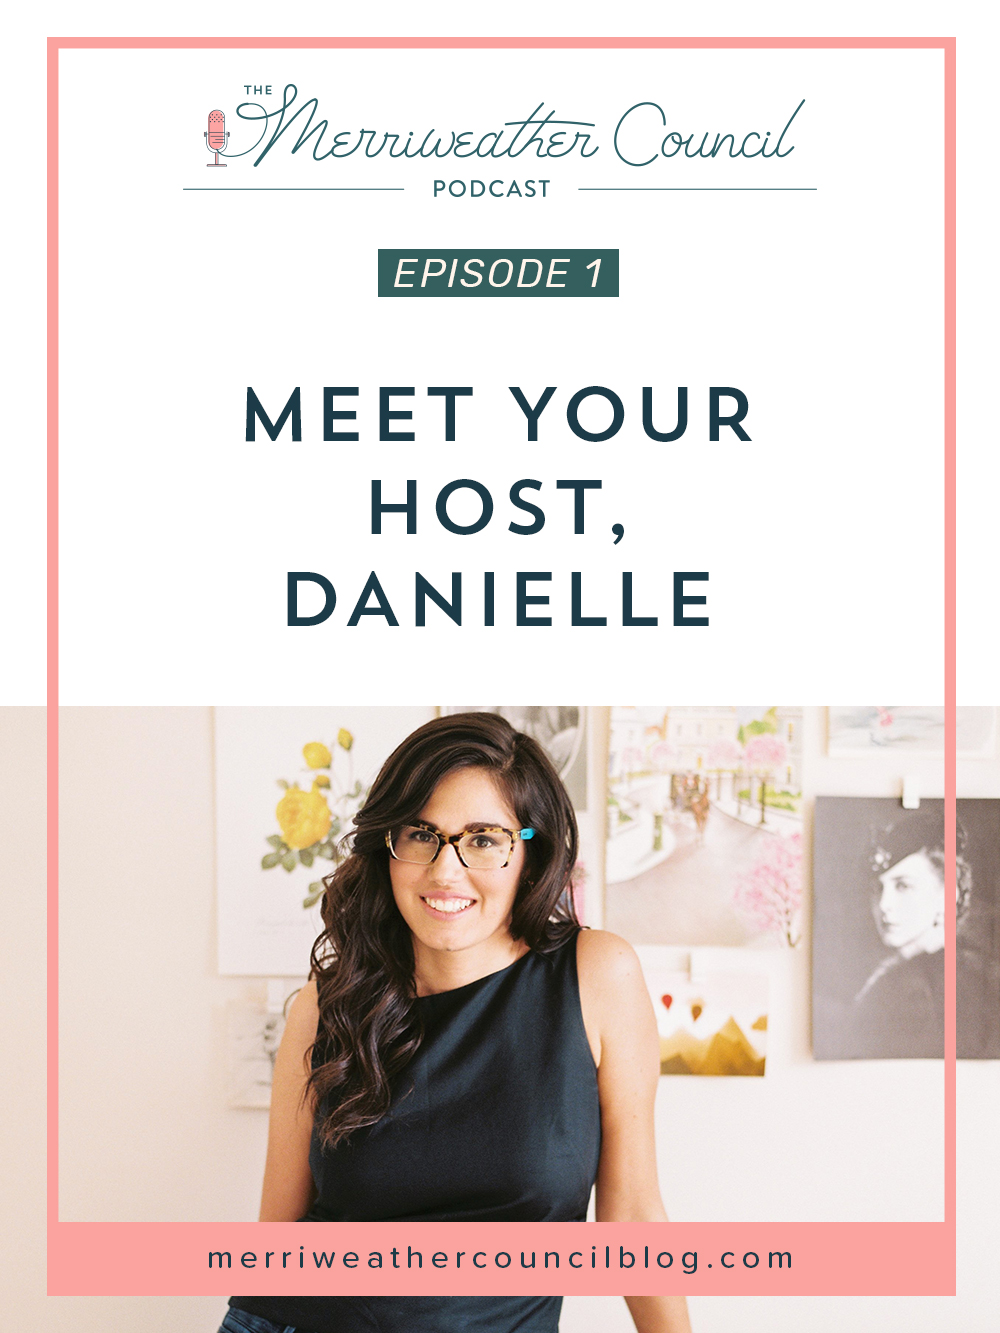 episode 001: Meet the Merriweather Council Podcast Host, Danielle | the merriweather council podcast